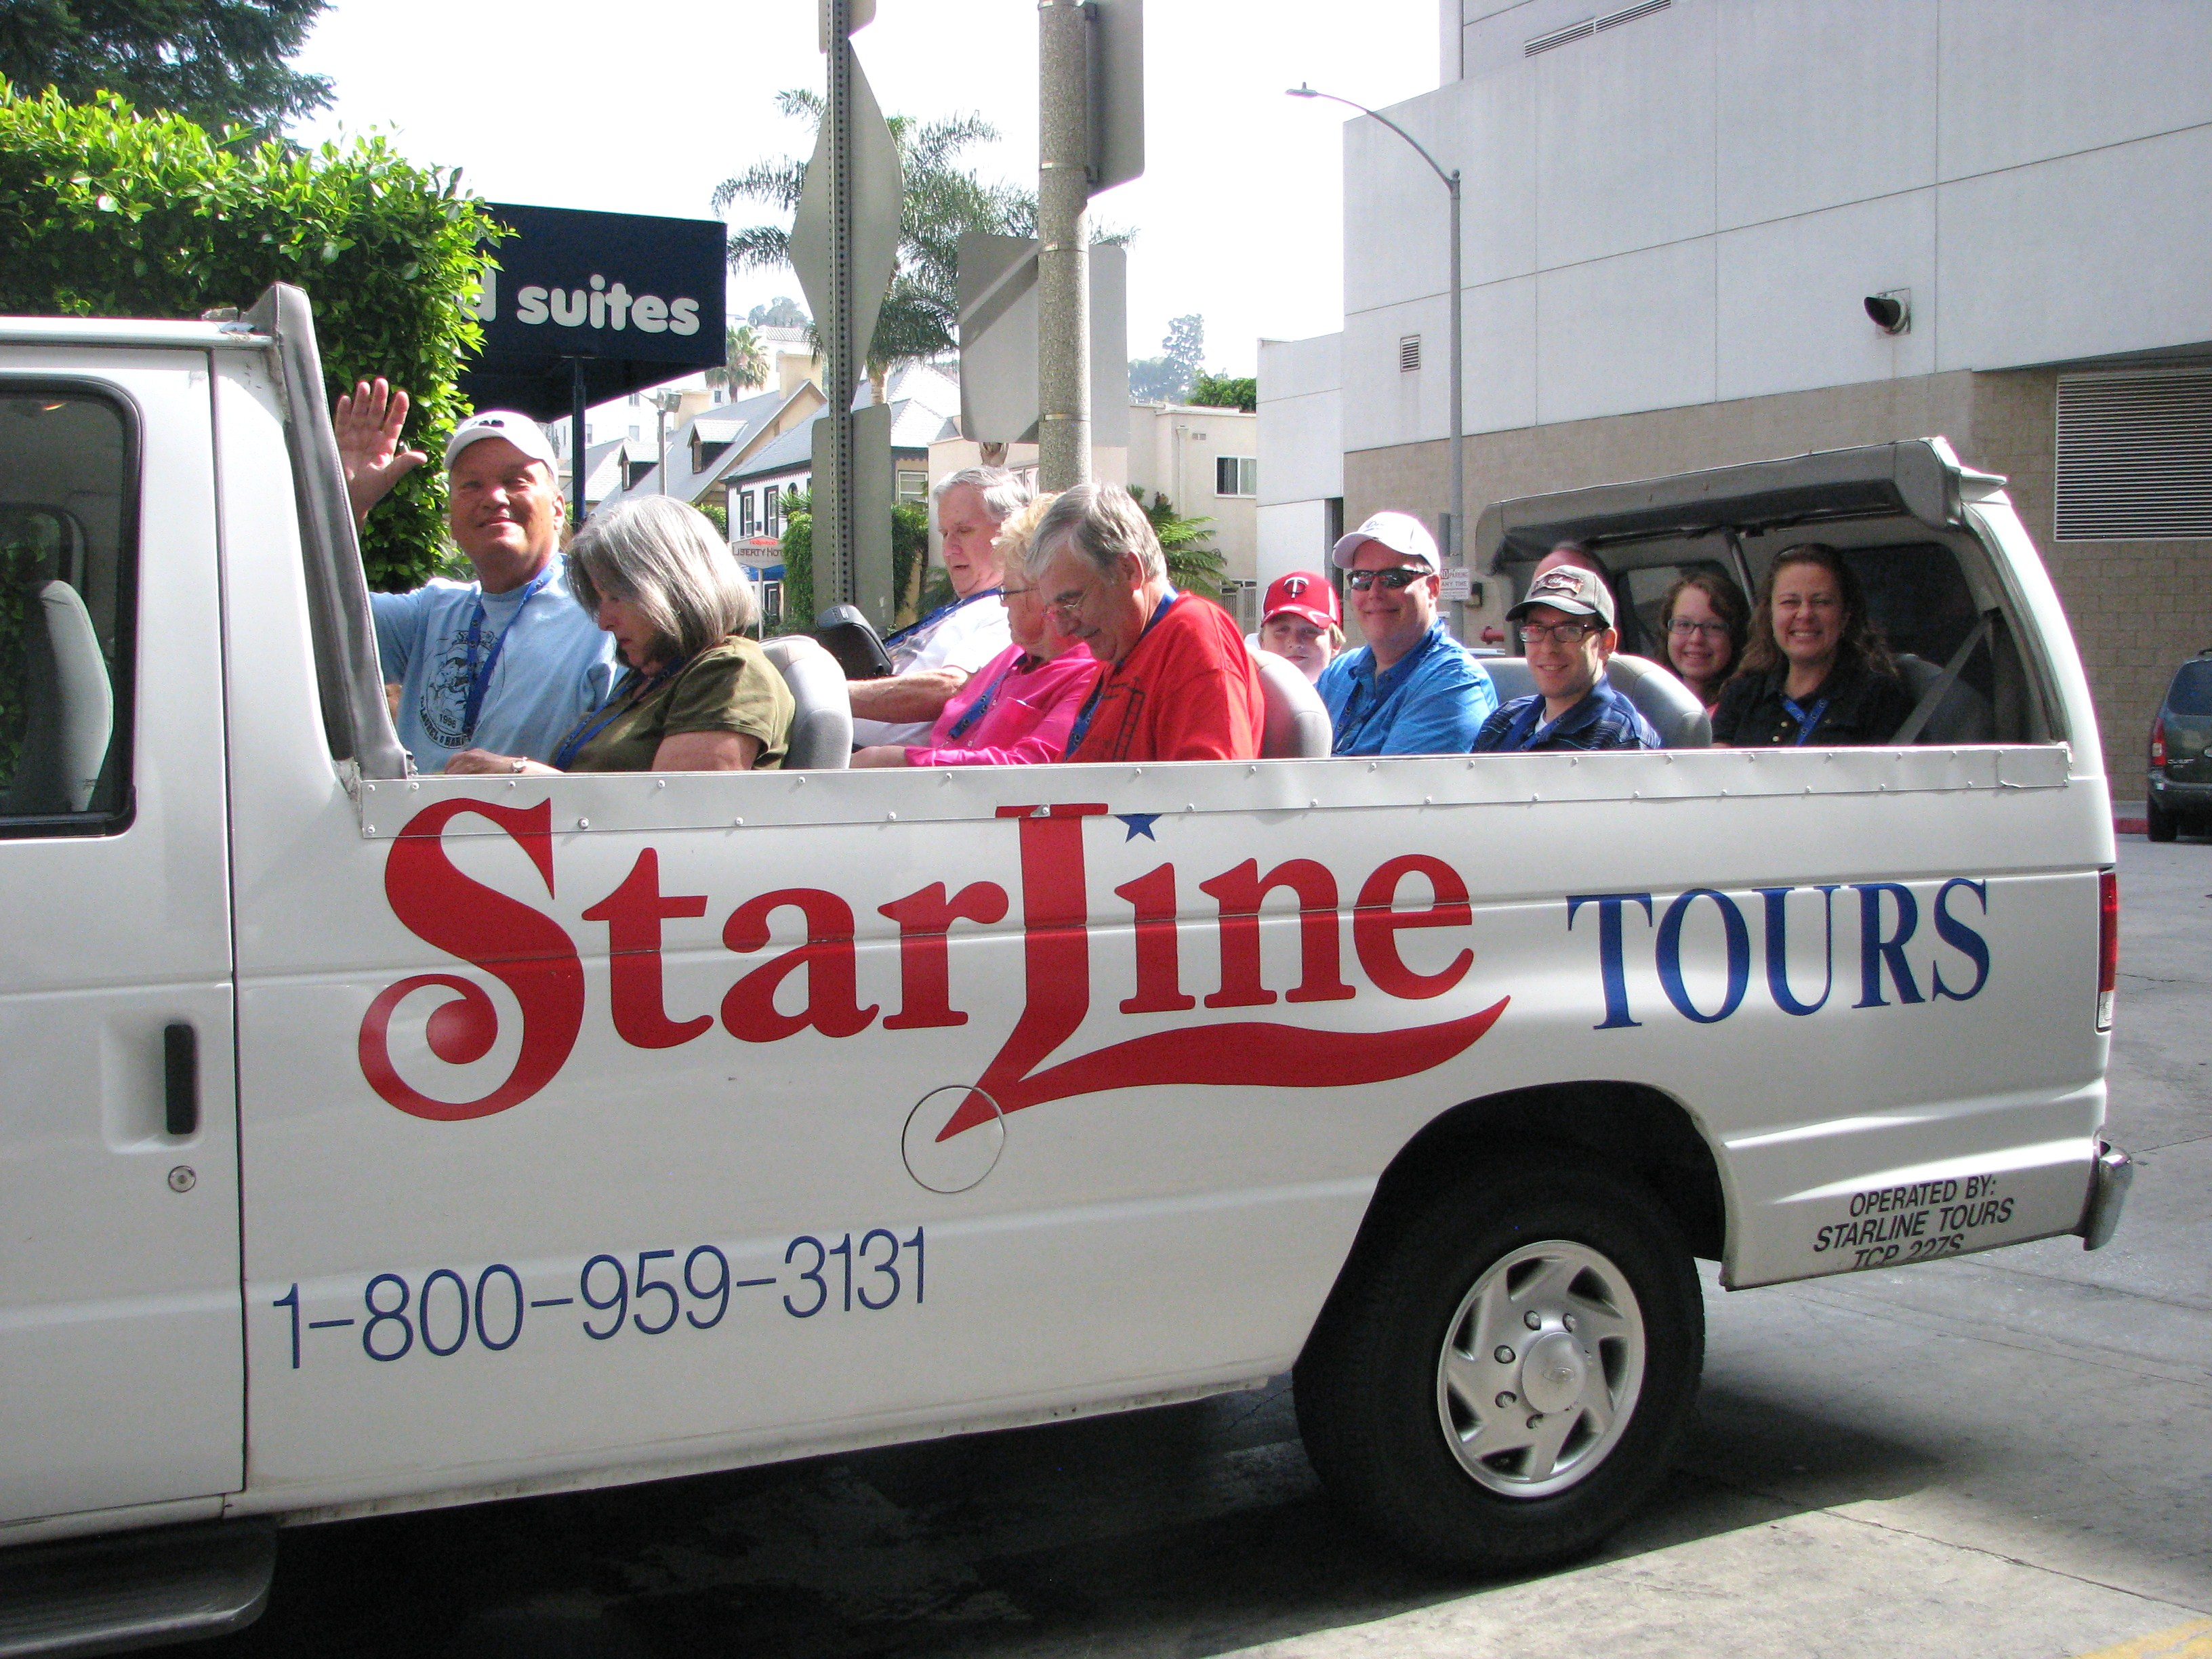 The mini-vans were loaded and ready for the trip through Beverly Hills, Cheviot Hills and Culver City.